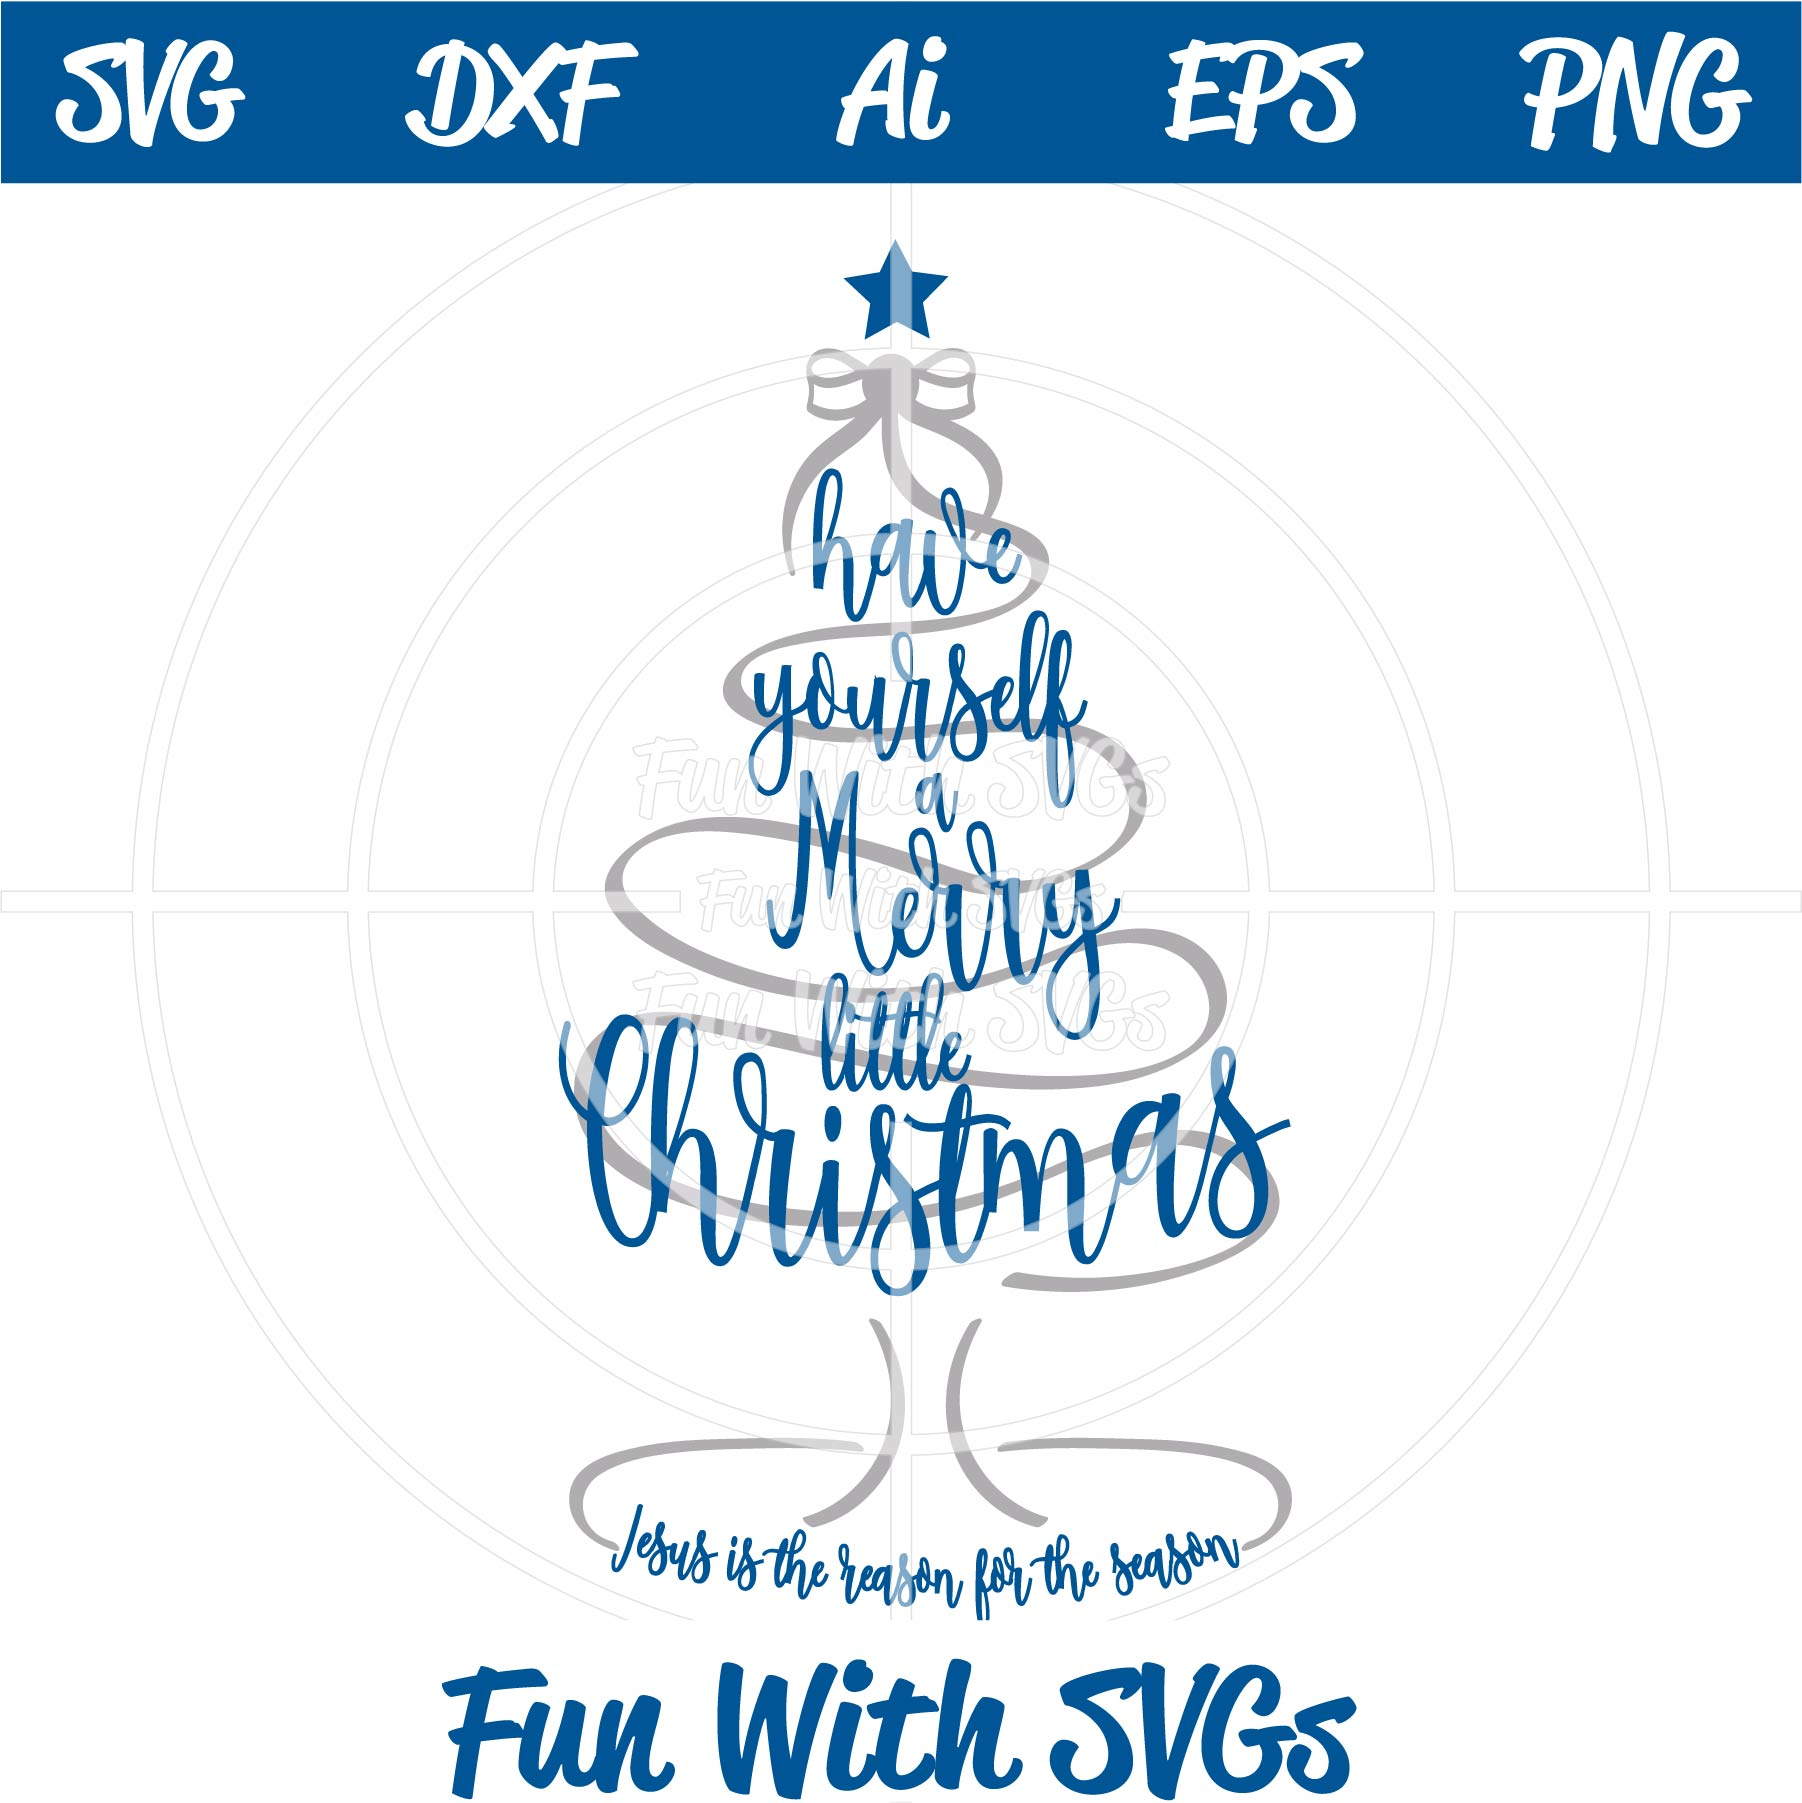 Merry Little Christmas.Merry Little Christmas Svg Cut File Fun With Svgs